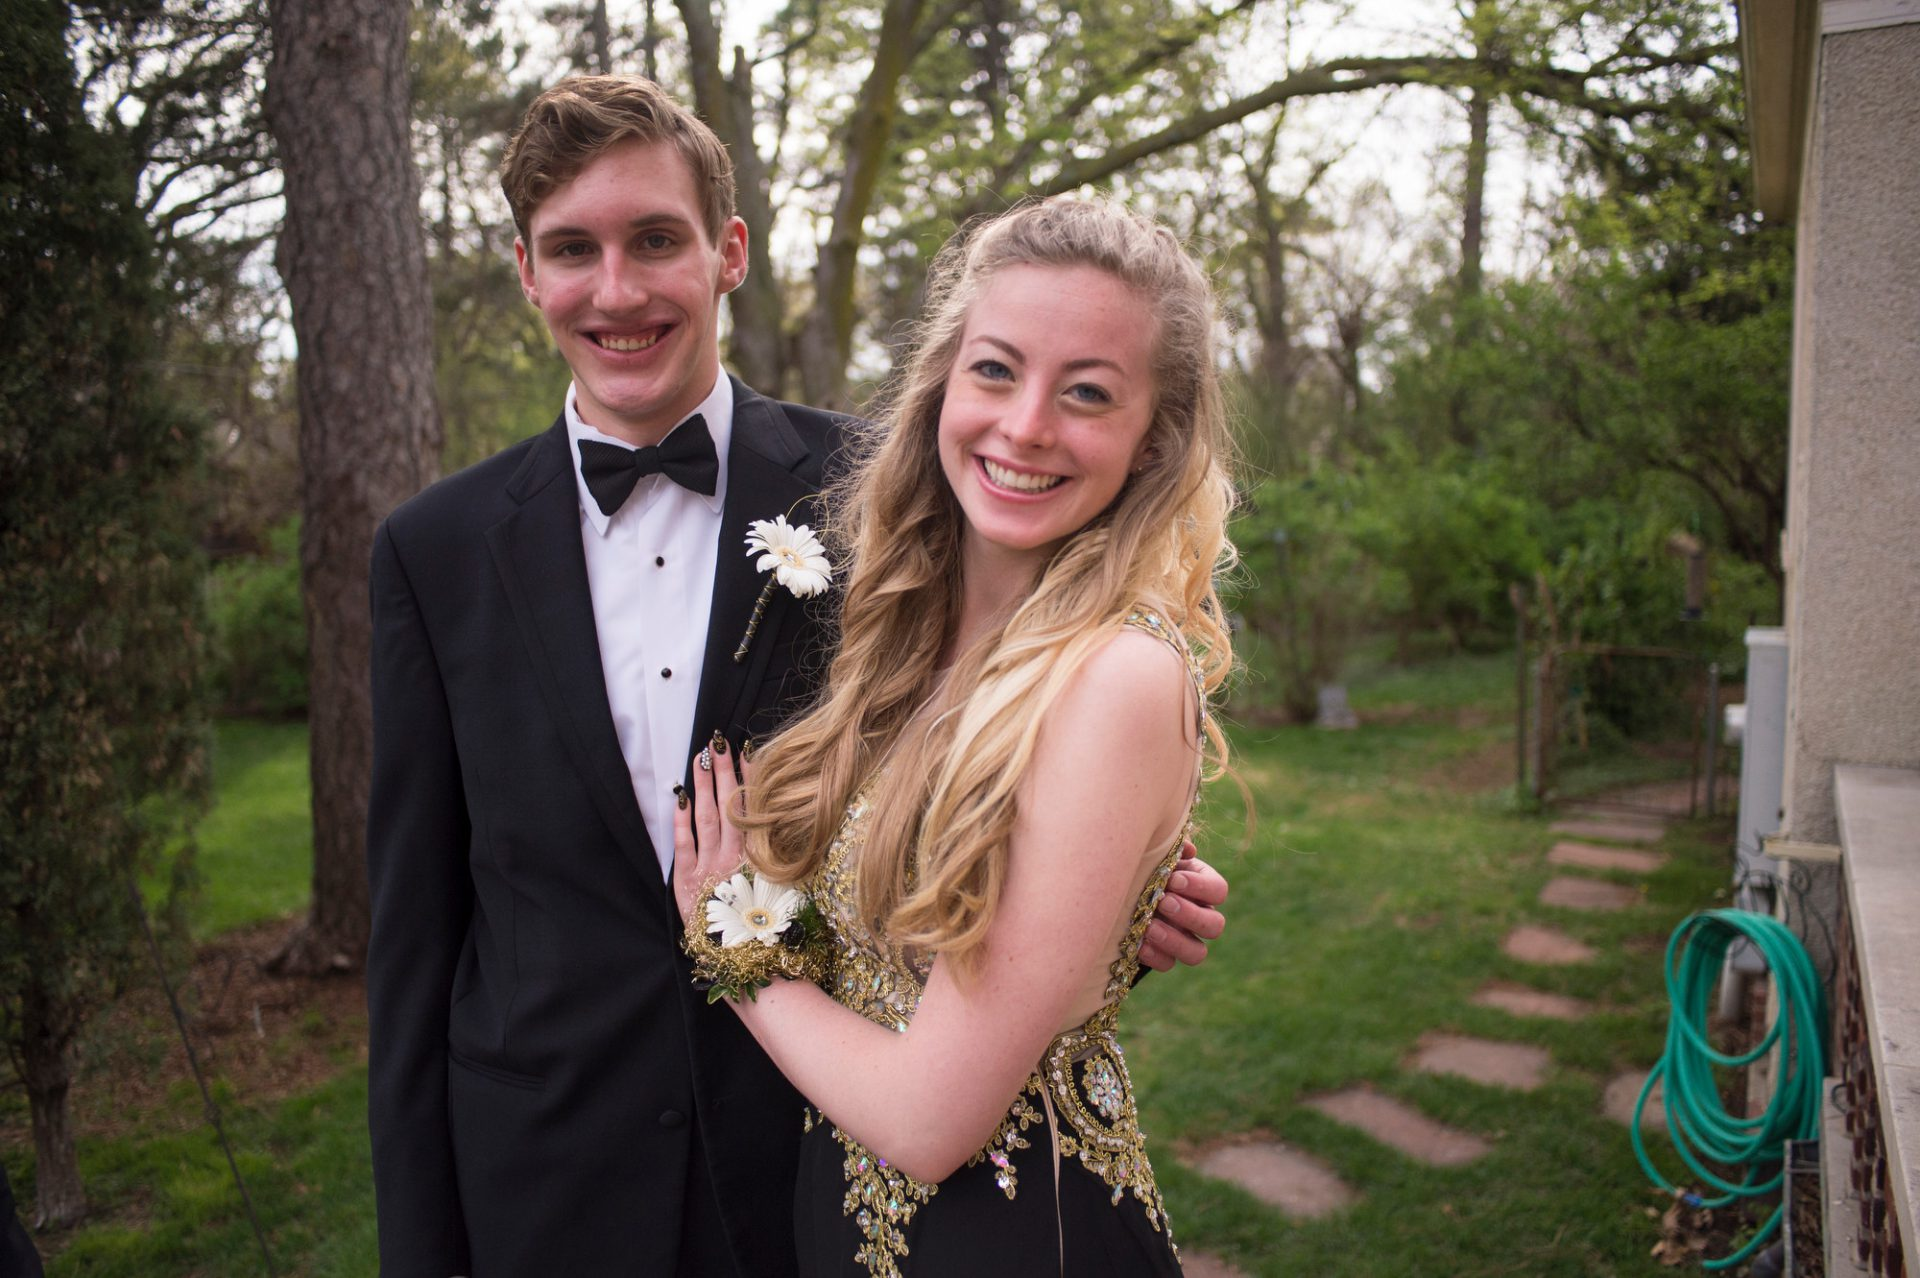 Photo: Two teenagers pose for portraits before heading to their senior prom.